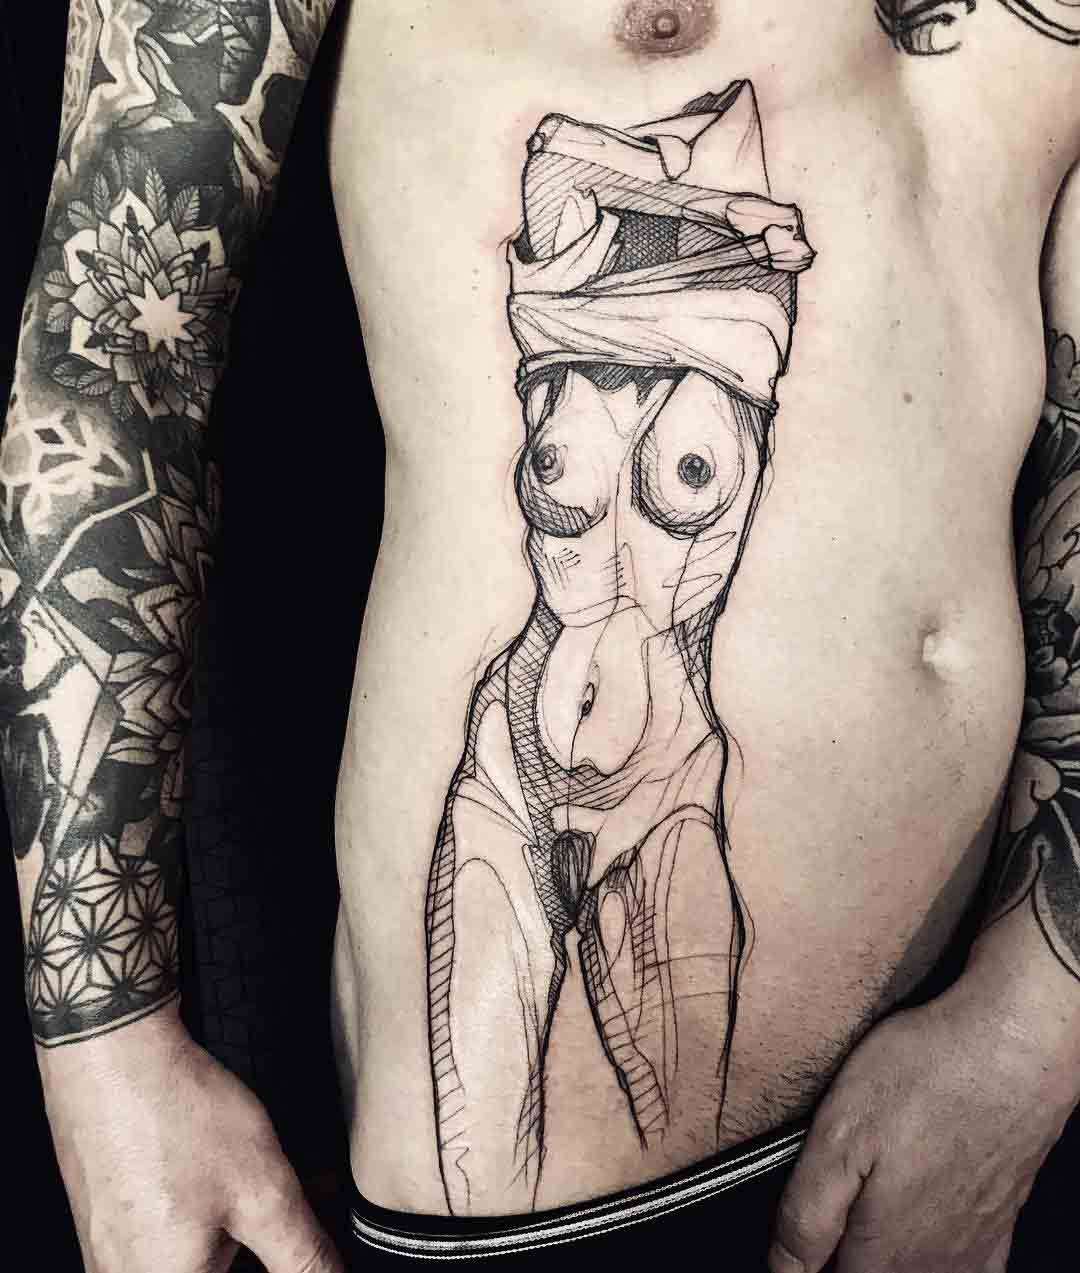 taking off clothes tattoo on stomach